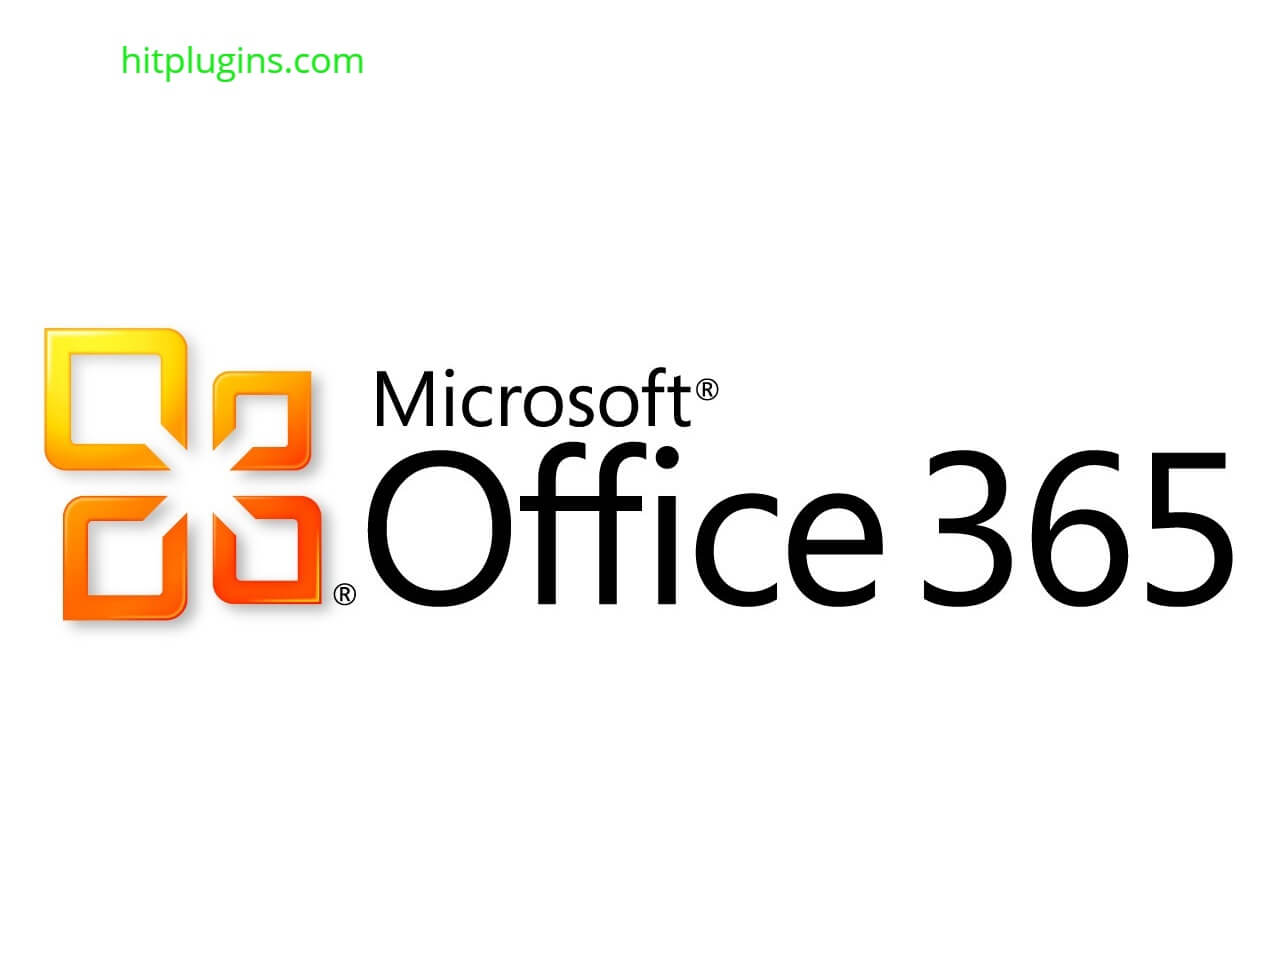 Microsoft Office 365 Latest Version Product Key Full Free Download 2021